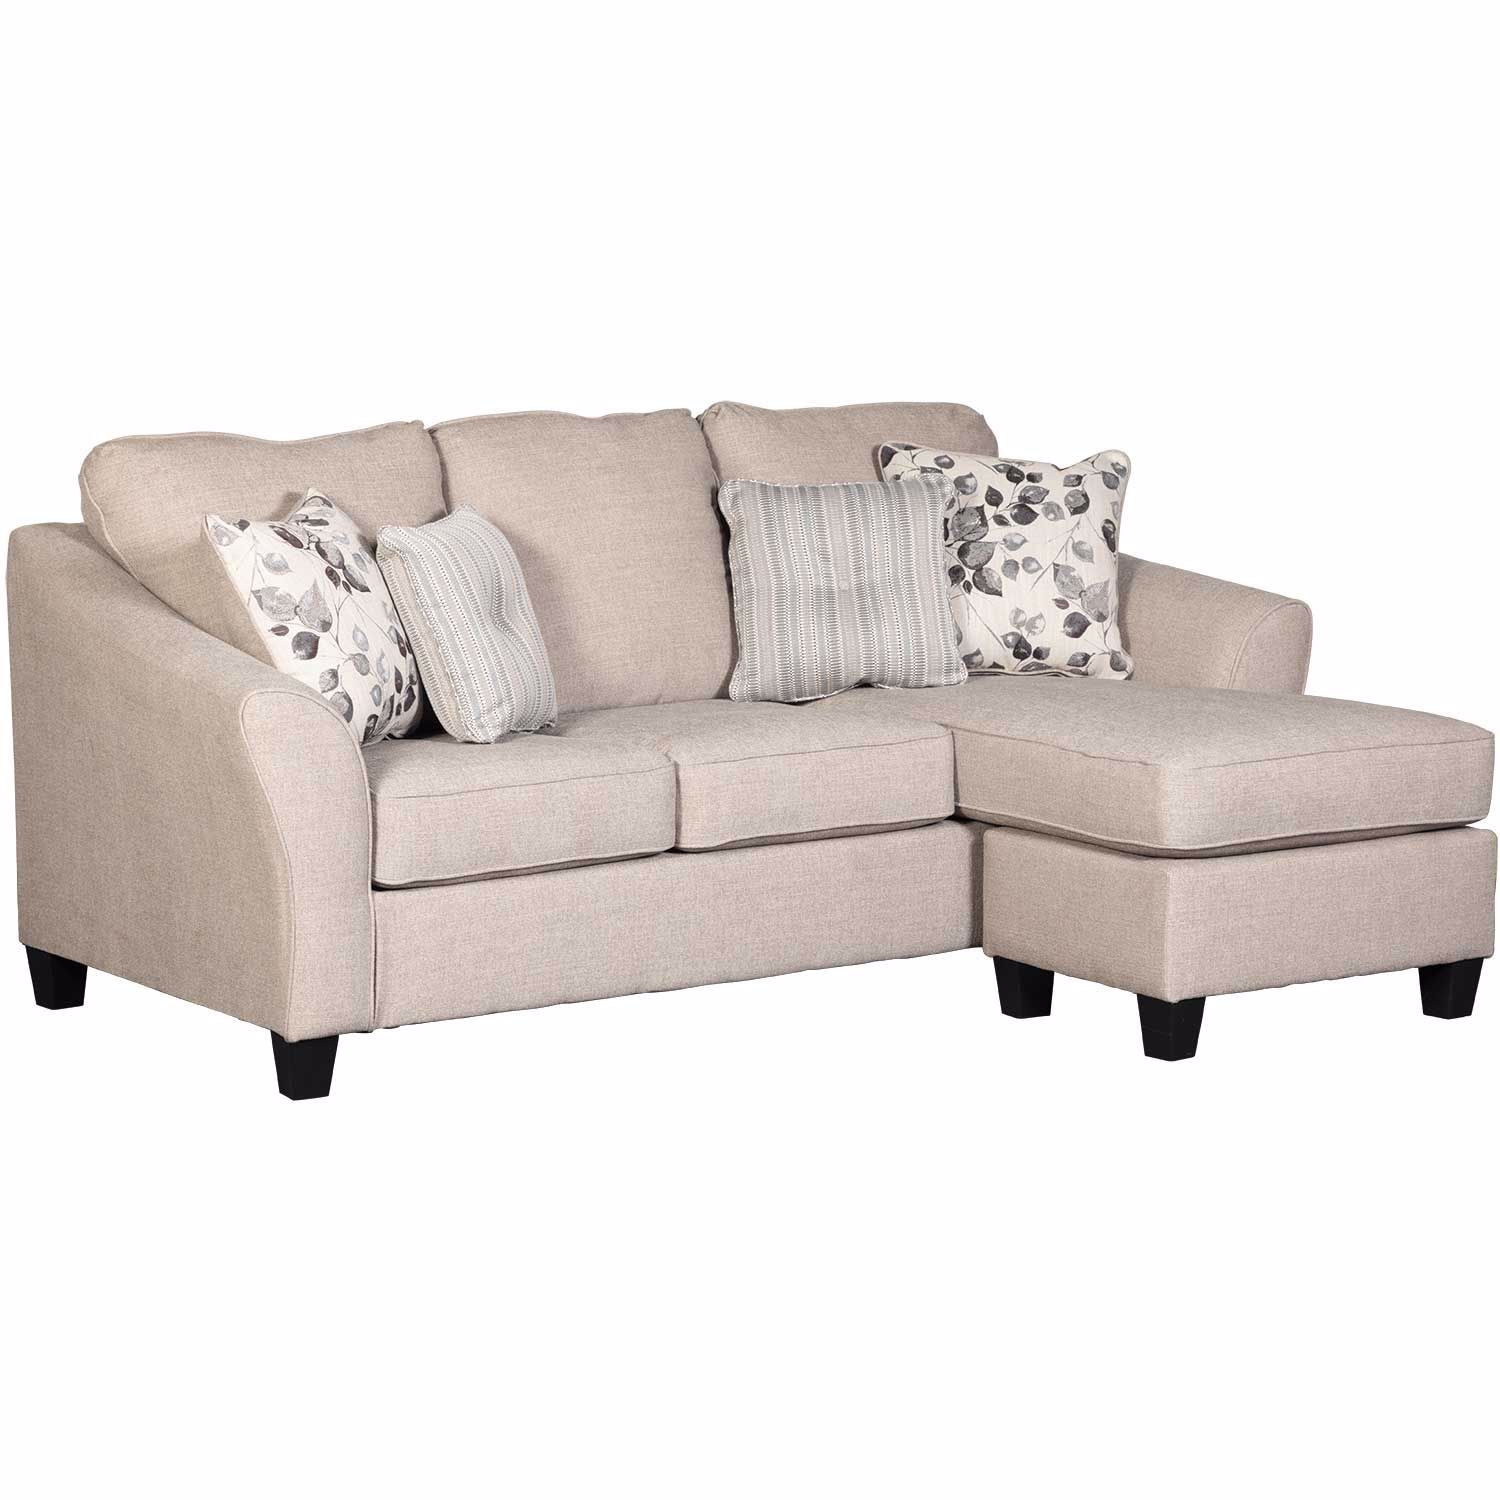 Picture of Abney Driftwood Reversible Queen Sleeper Sofa Chaise